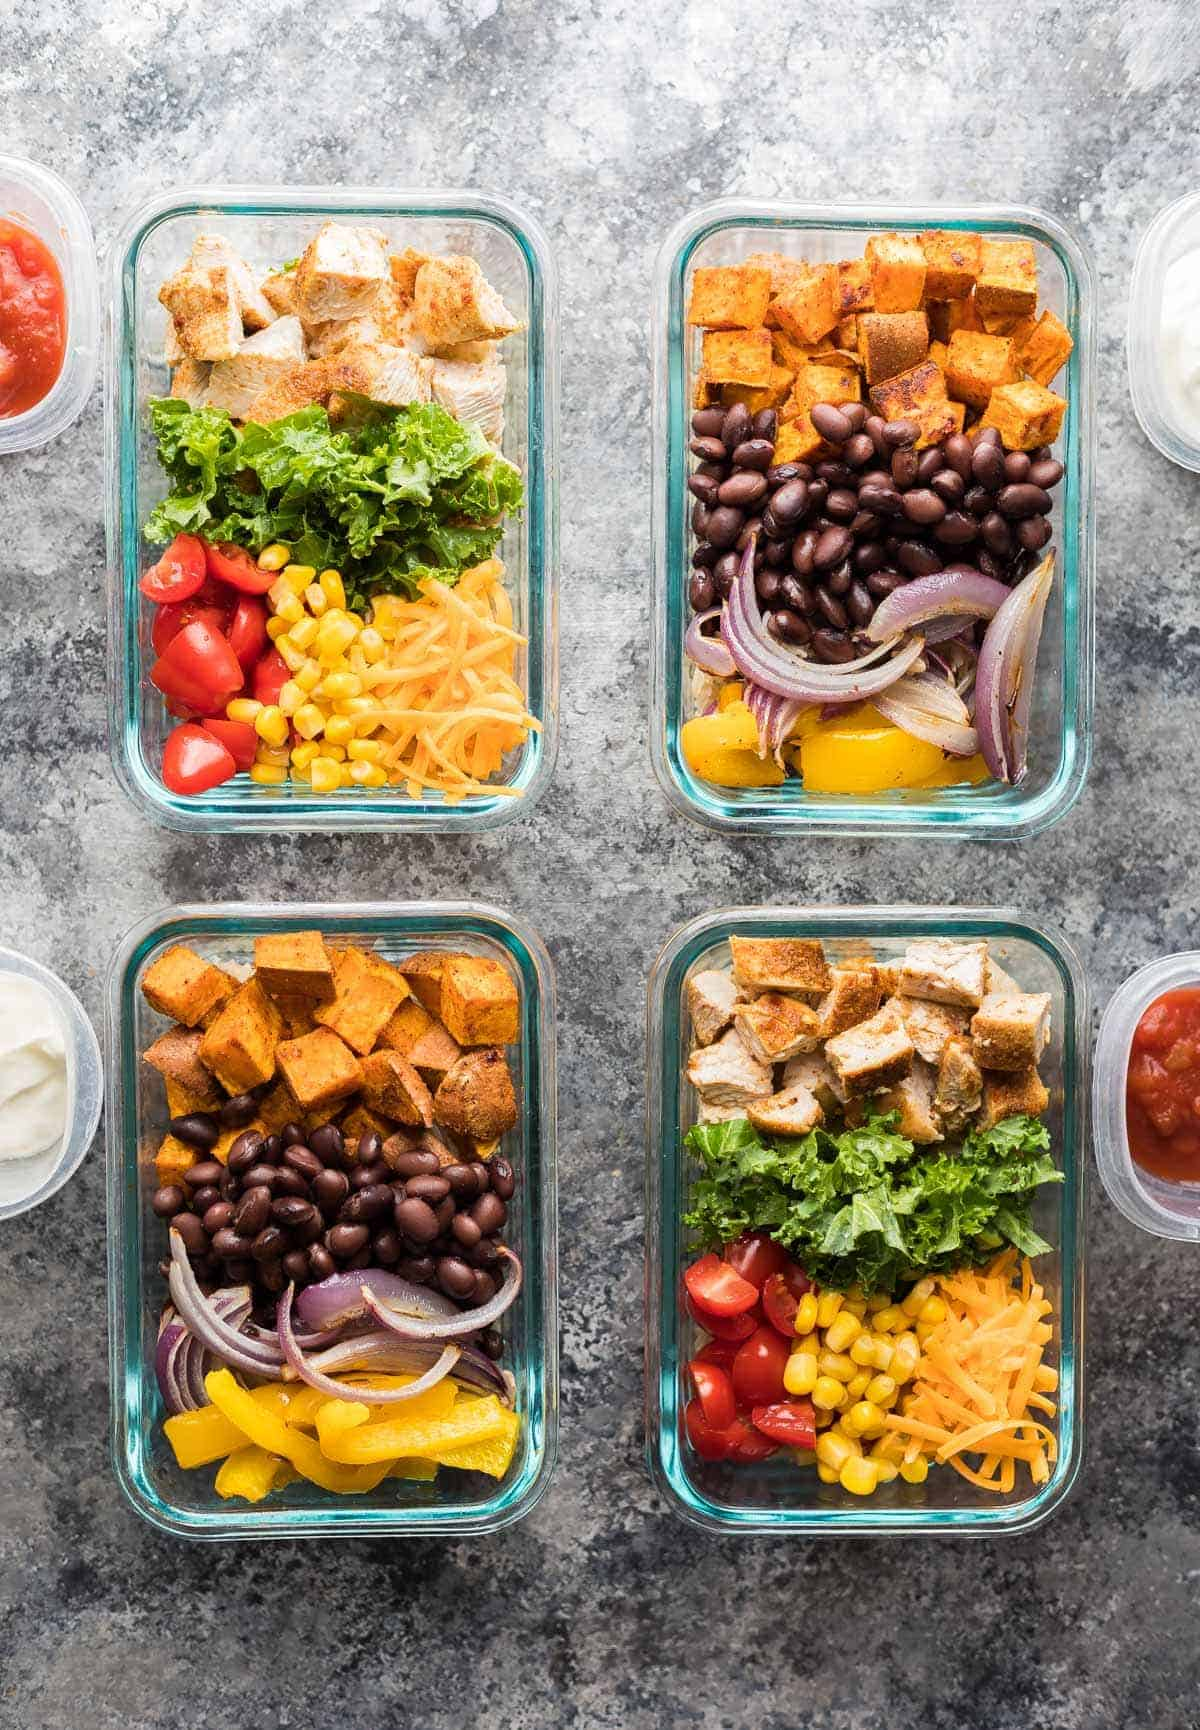 These mix & match meal prep burrito bowls will help you make four delicious lunches using what you have on hand in your pantry and fridge.